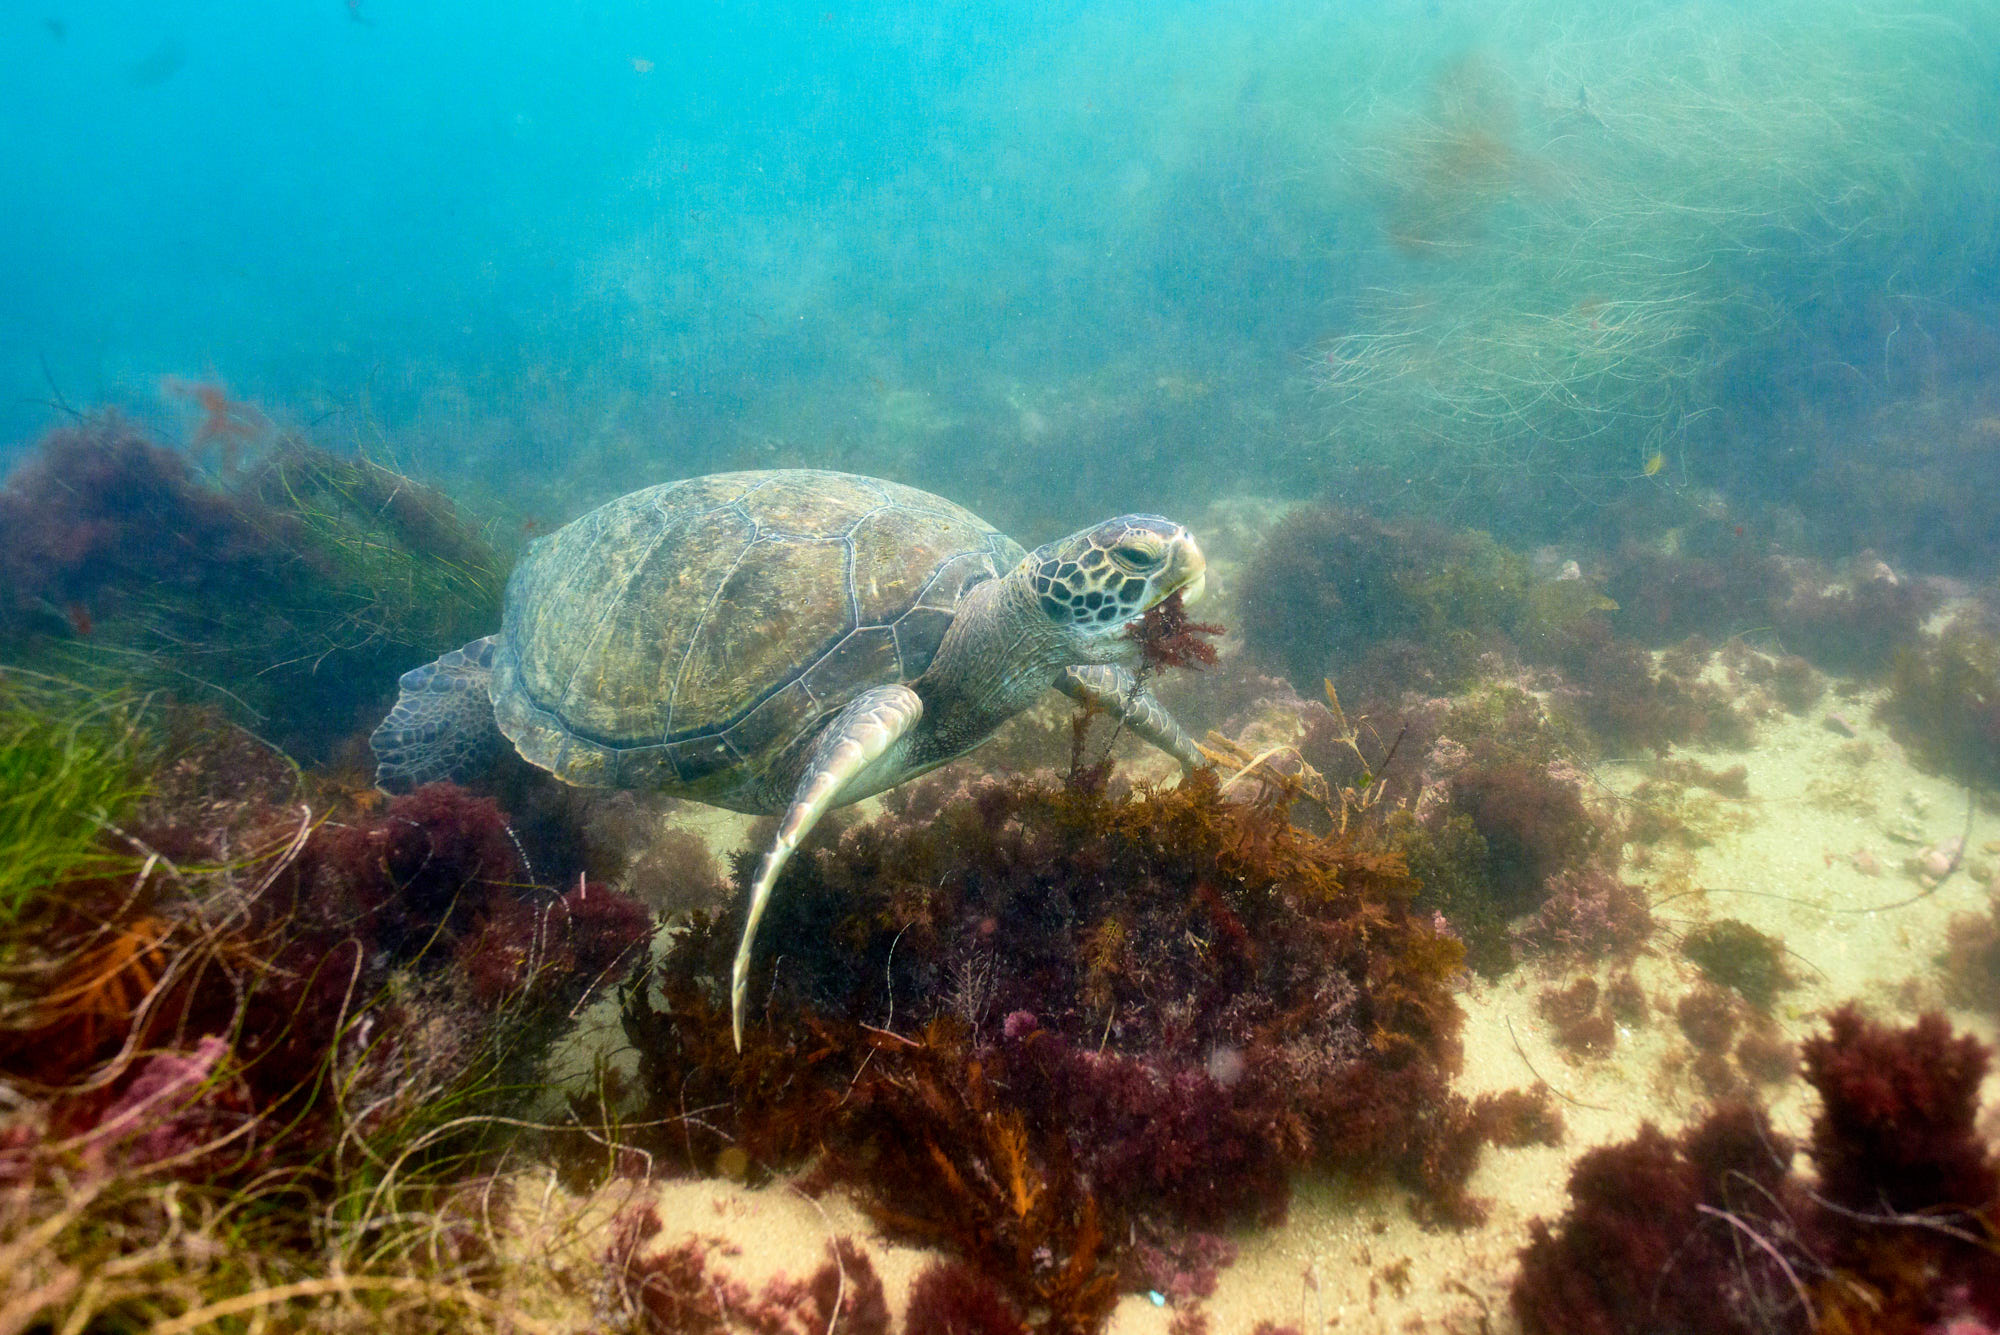 A Green Sea Turtle Eat Kelp - La Jolla Snorkelling